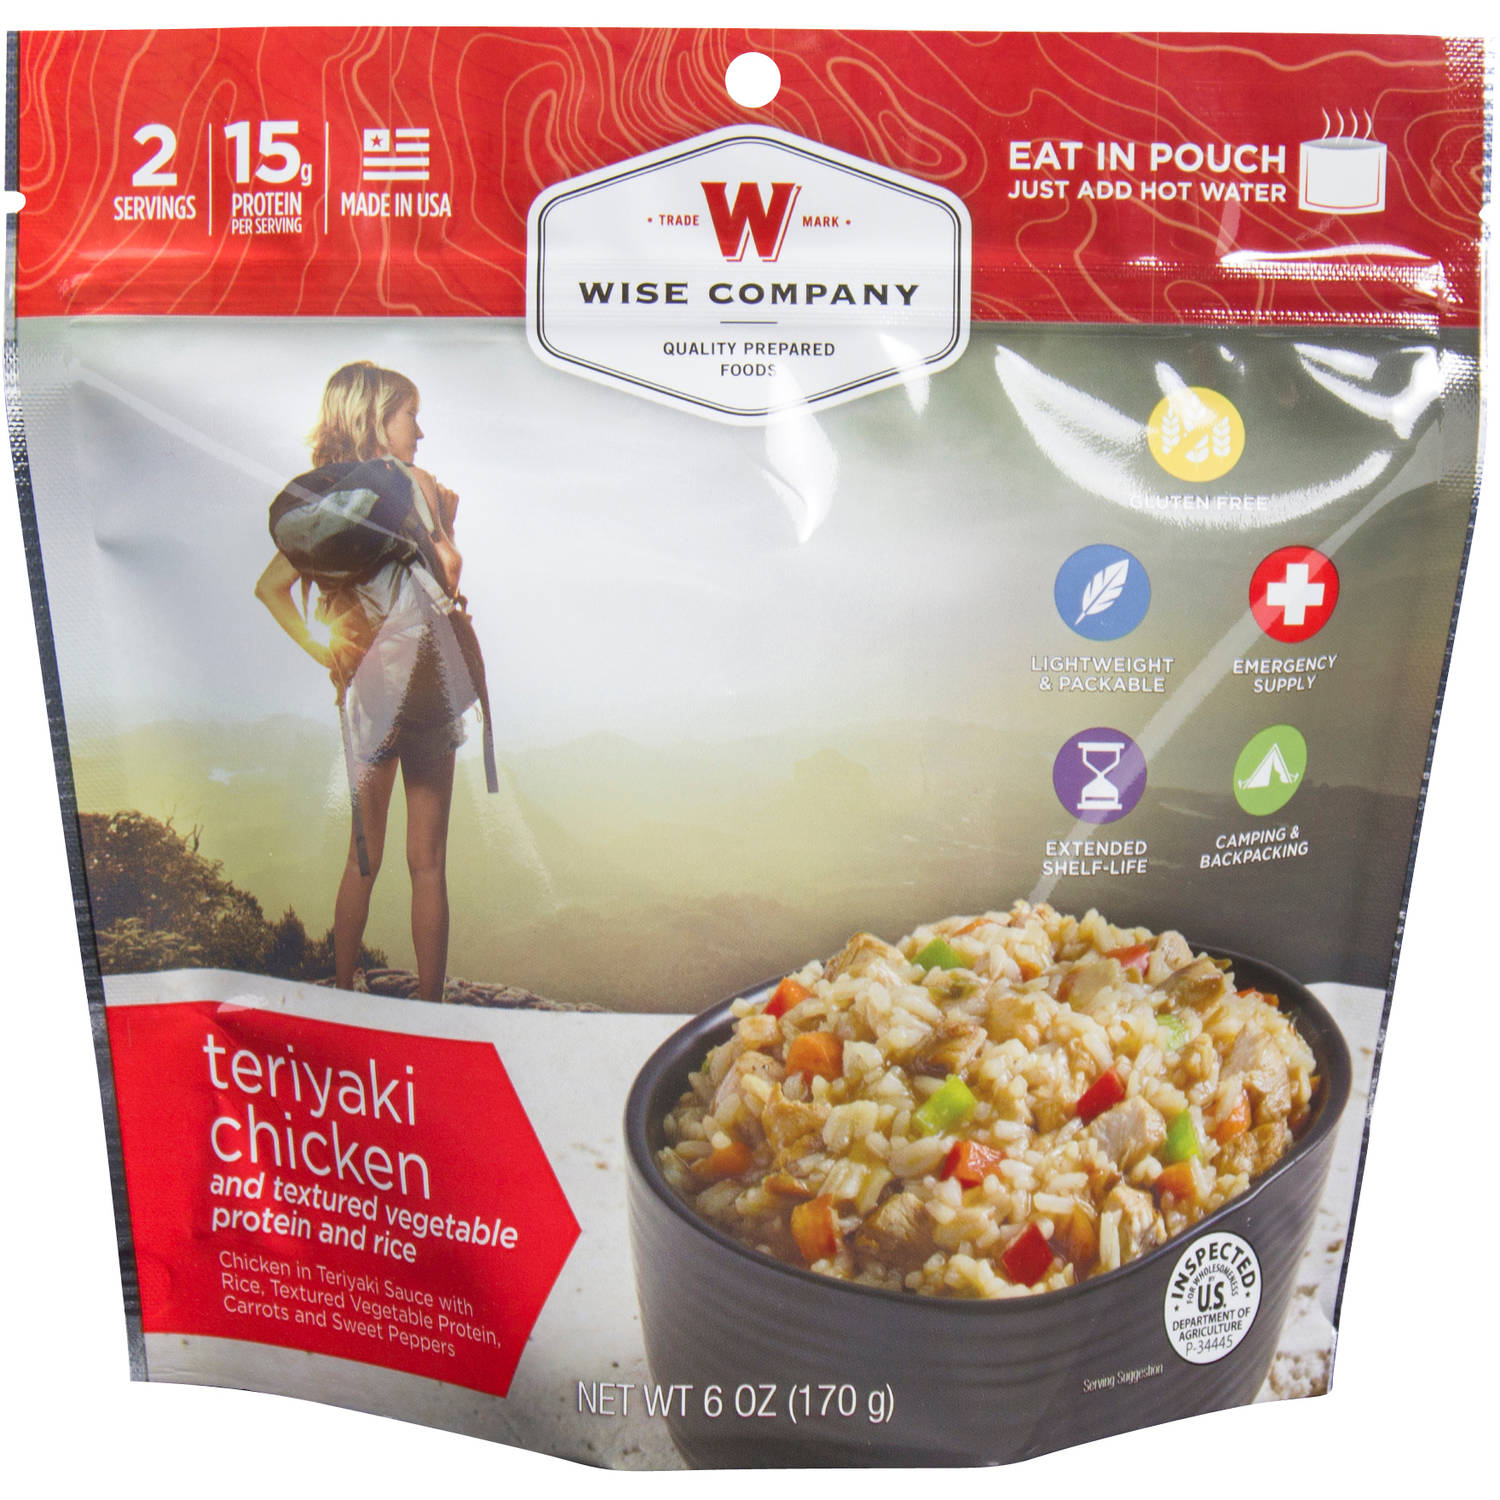 Wise Company Teriyaki Chicken & Textured Vegetable Protein and Rice Prepared Meal, 6 oz